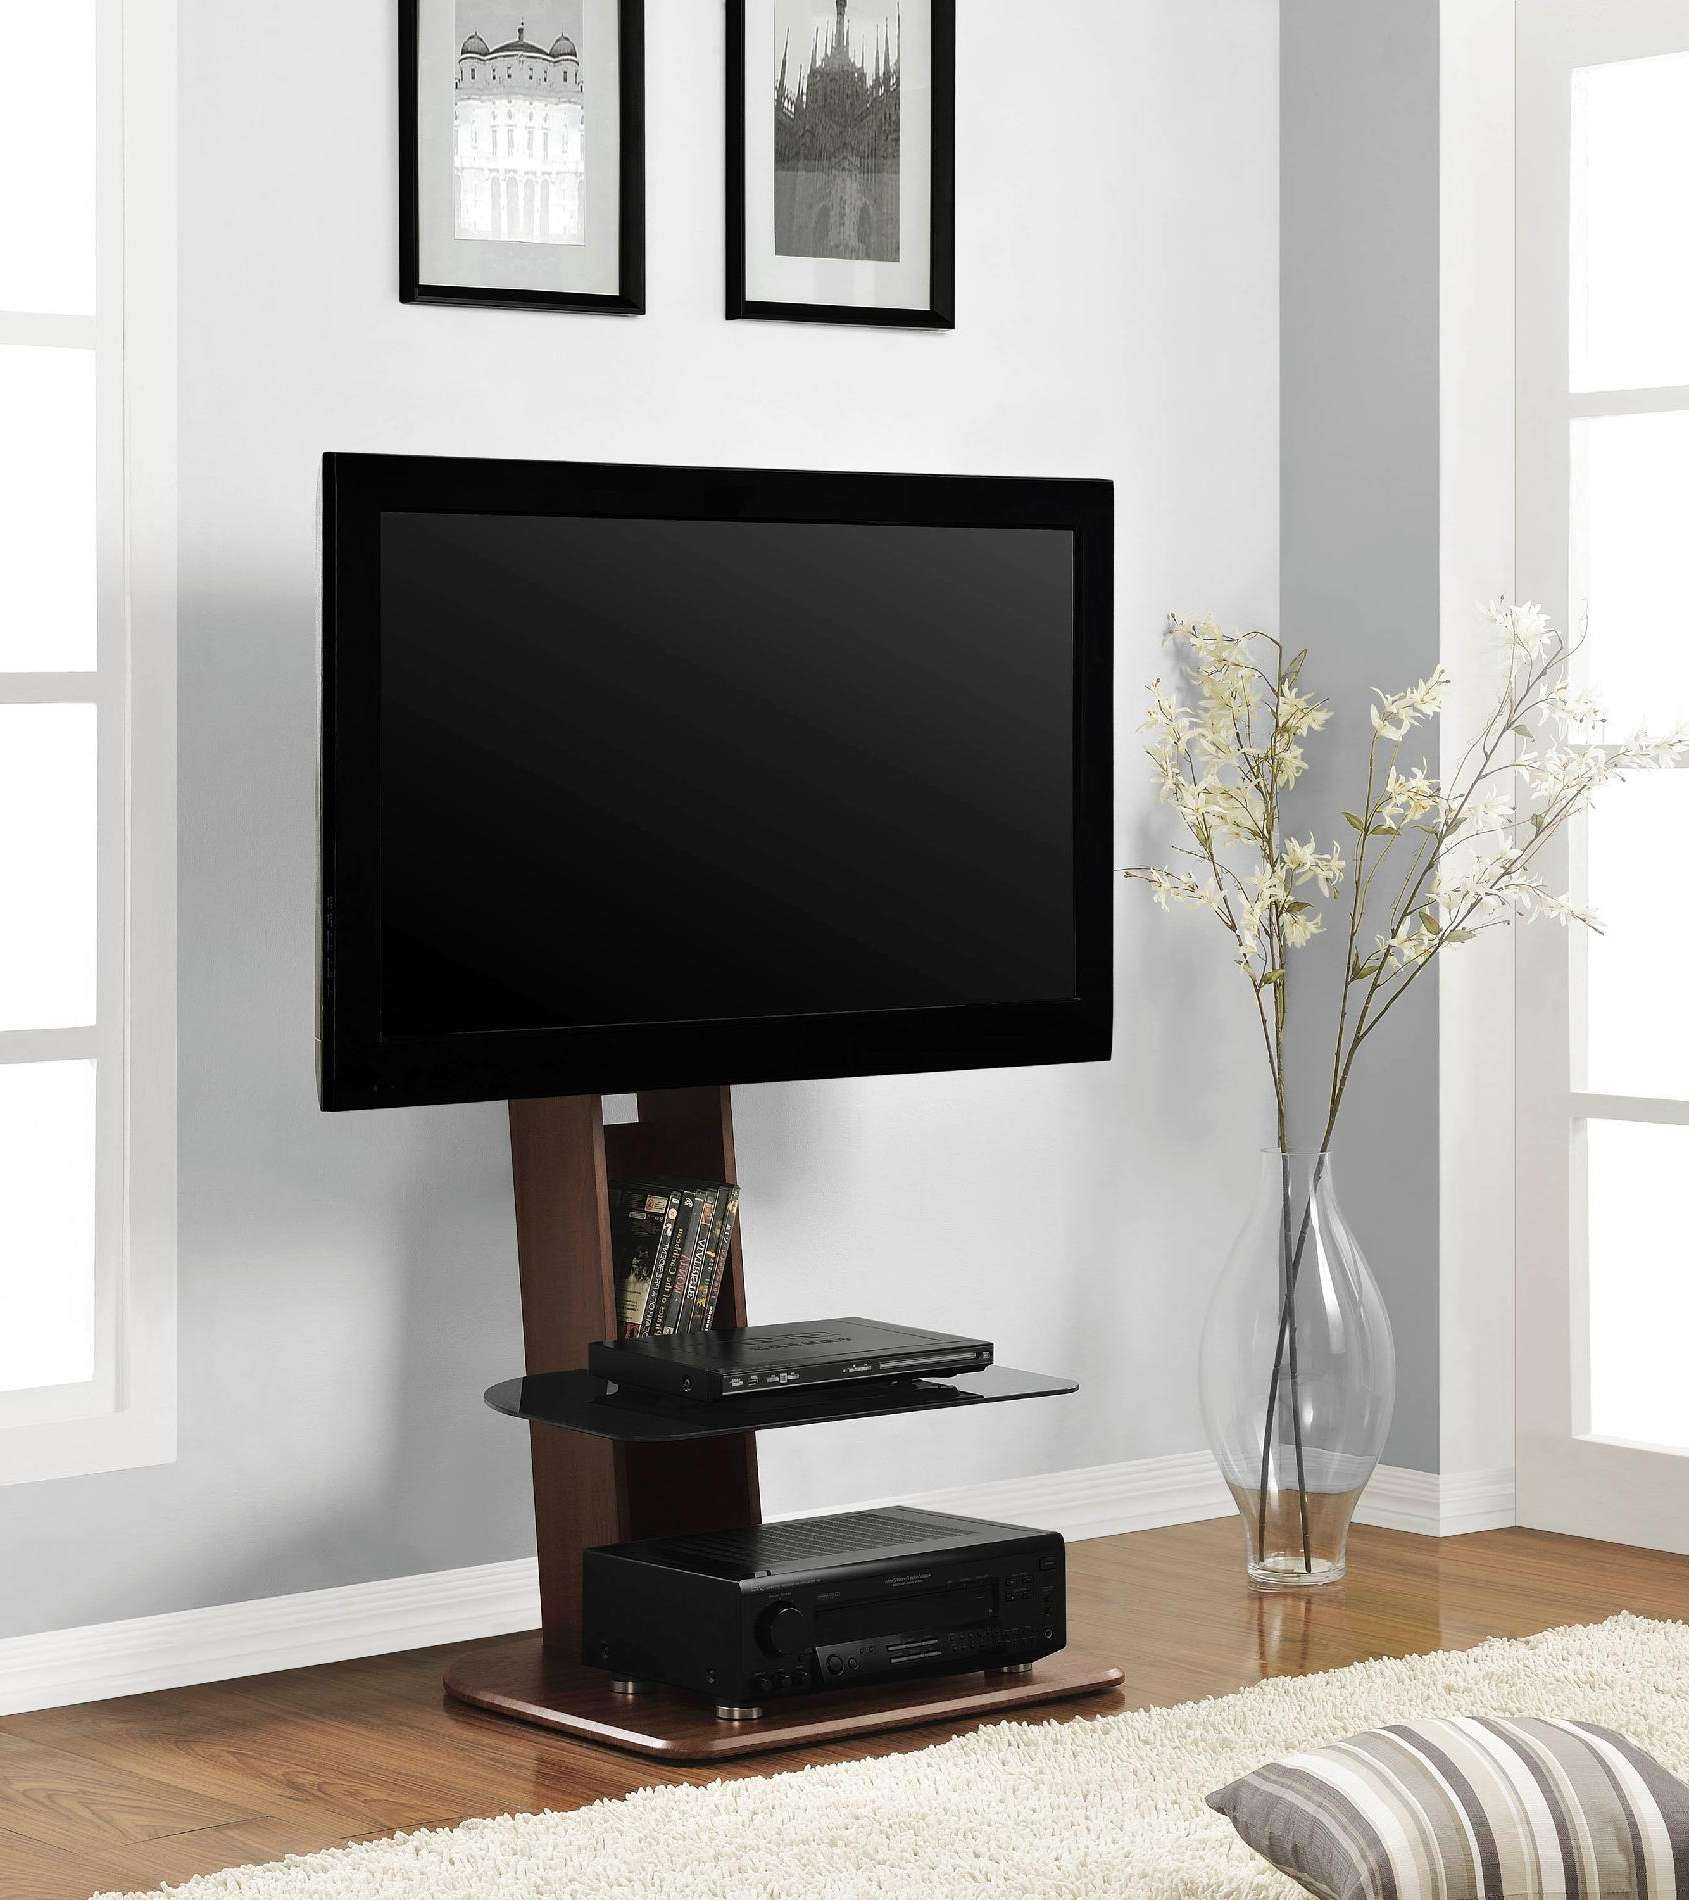 Home Decor: Wonderful Flat Screen Tv Stands With Mounts In Narrow Tv Stands For Flat Screens (View 5 of 15)